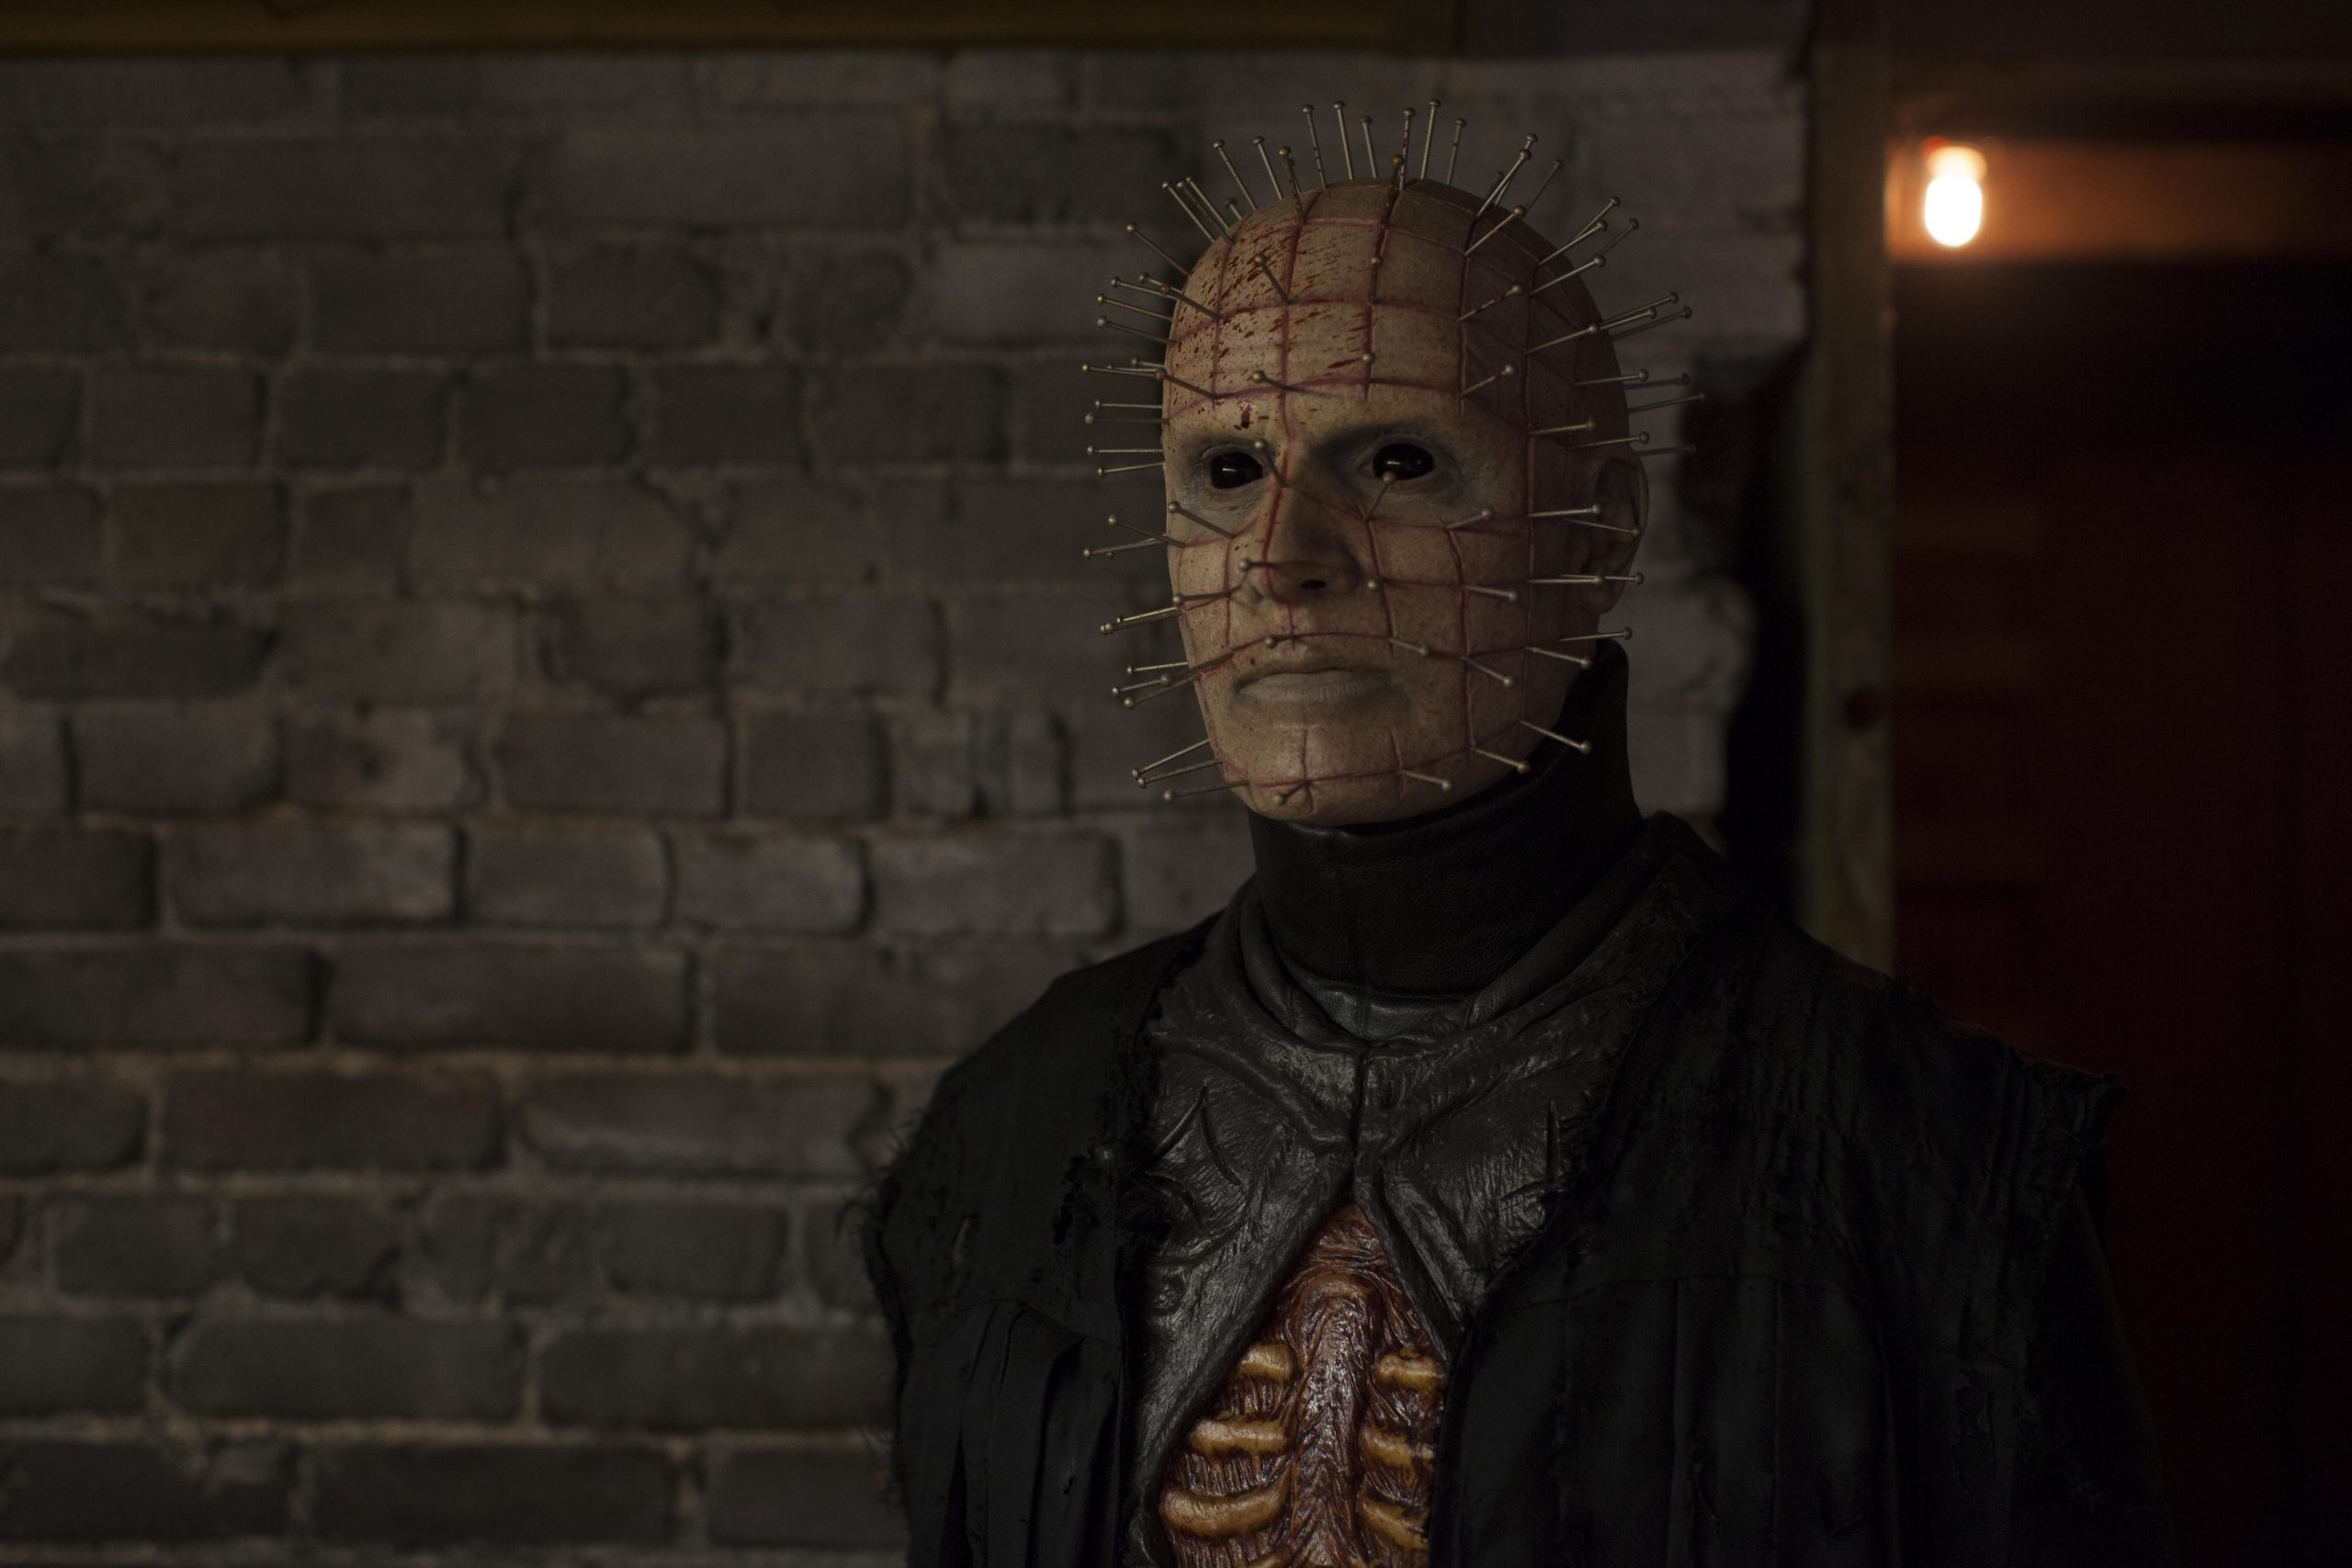 HELLRAISER: JUDGMENT & HELLRAISER: REVELATIONS Available Now on Digital Download, Blu-ray & DVD from Lionsgate UK